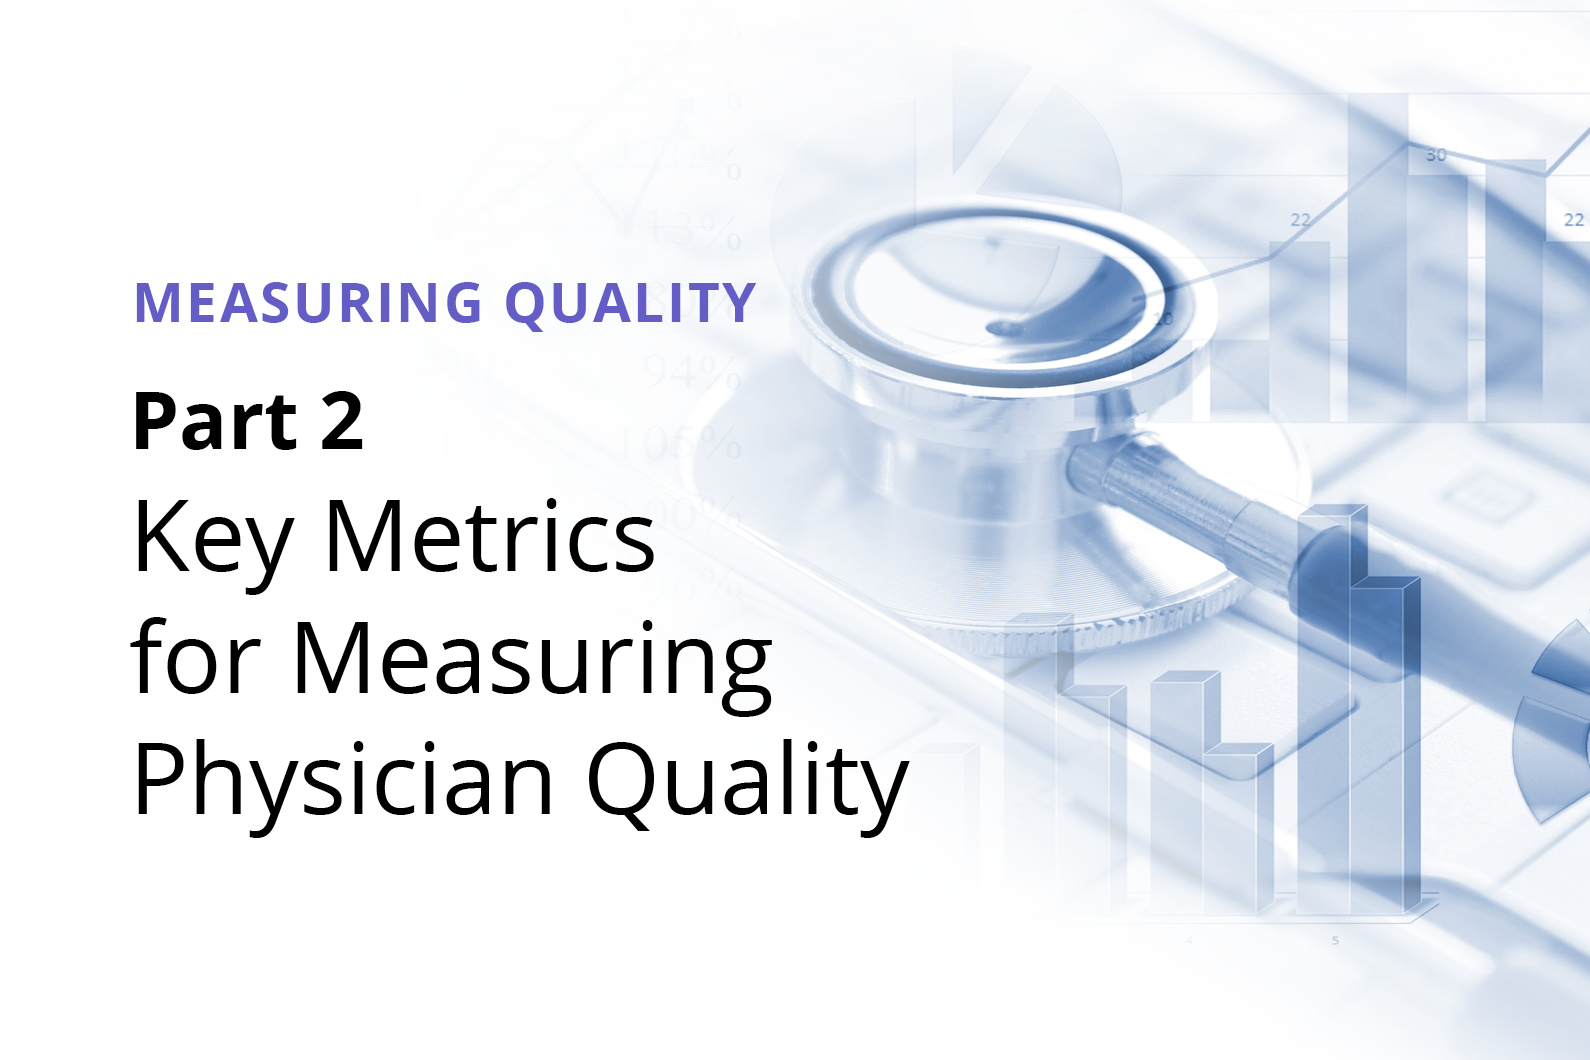 Graphic: Key metrics for measuring Physician Quality